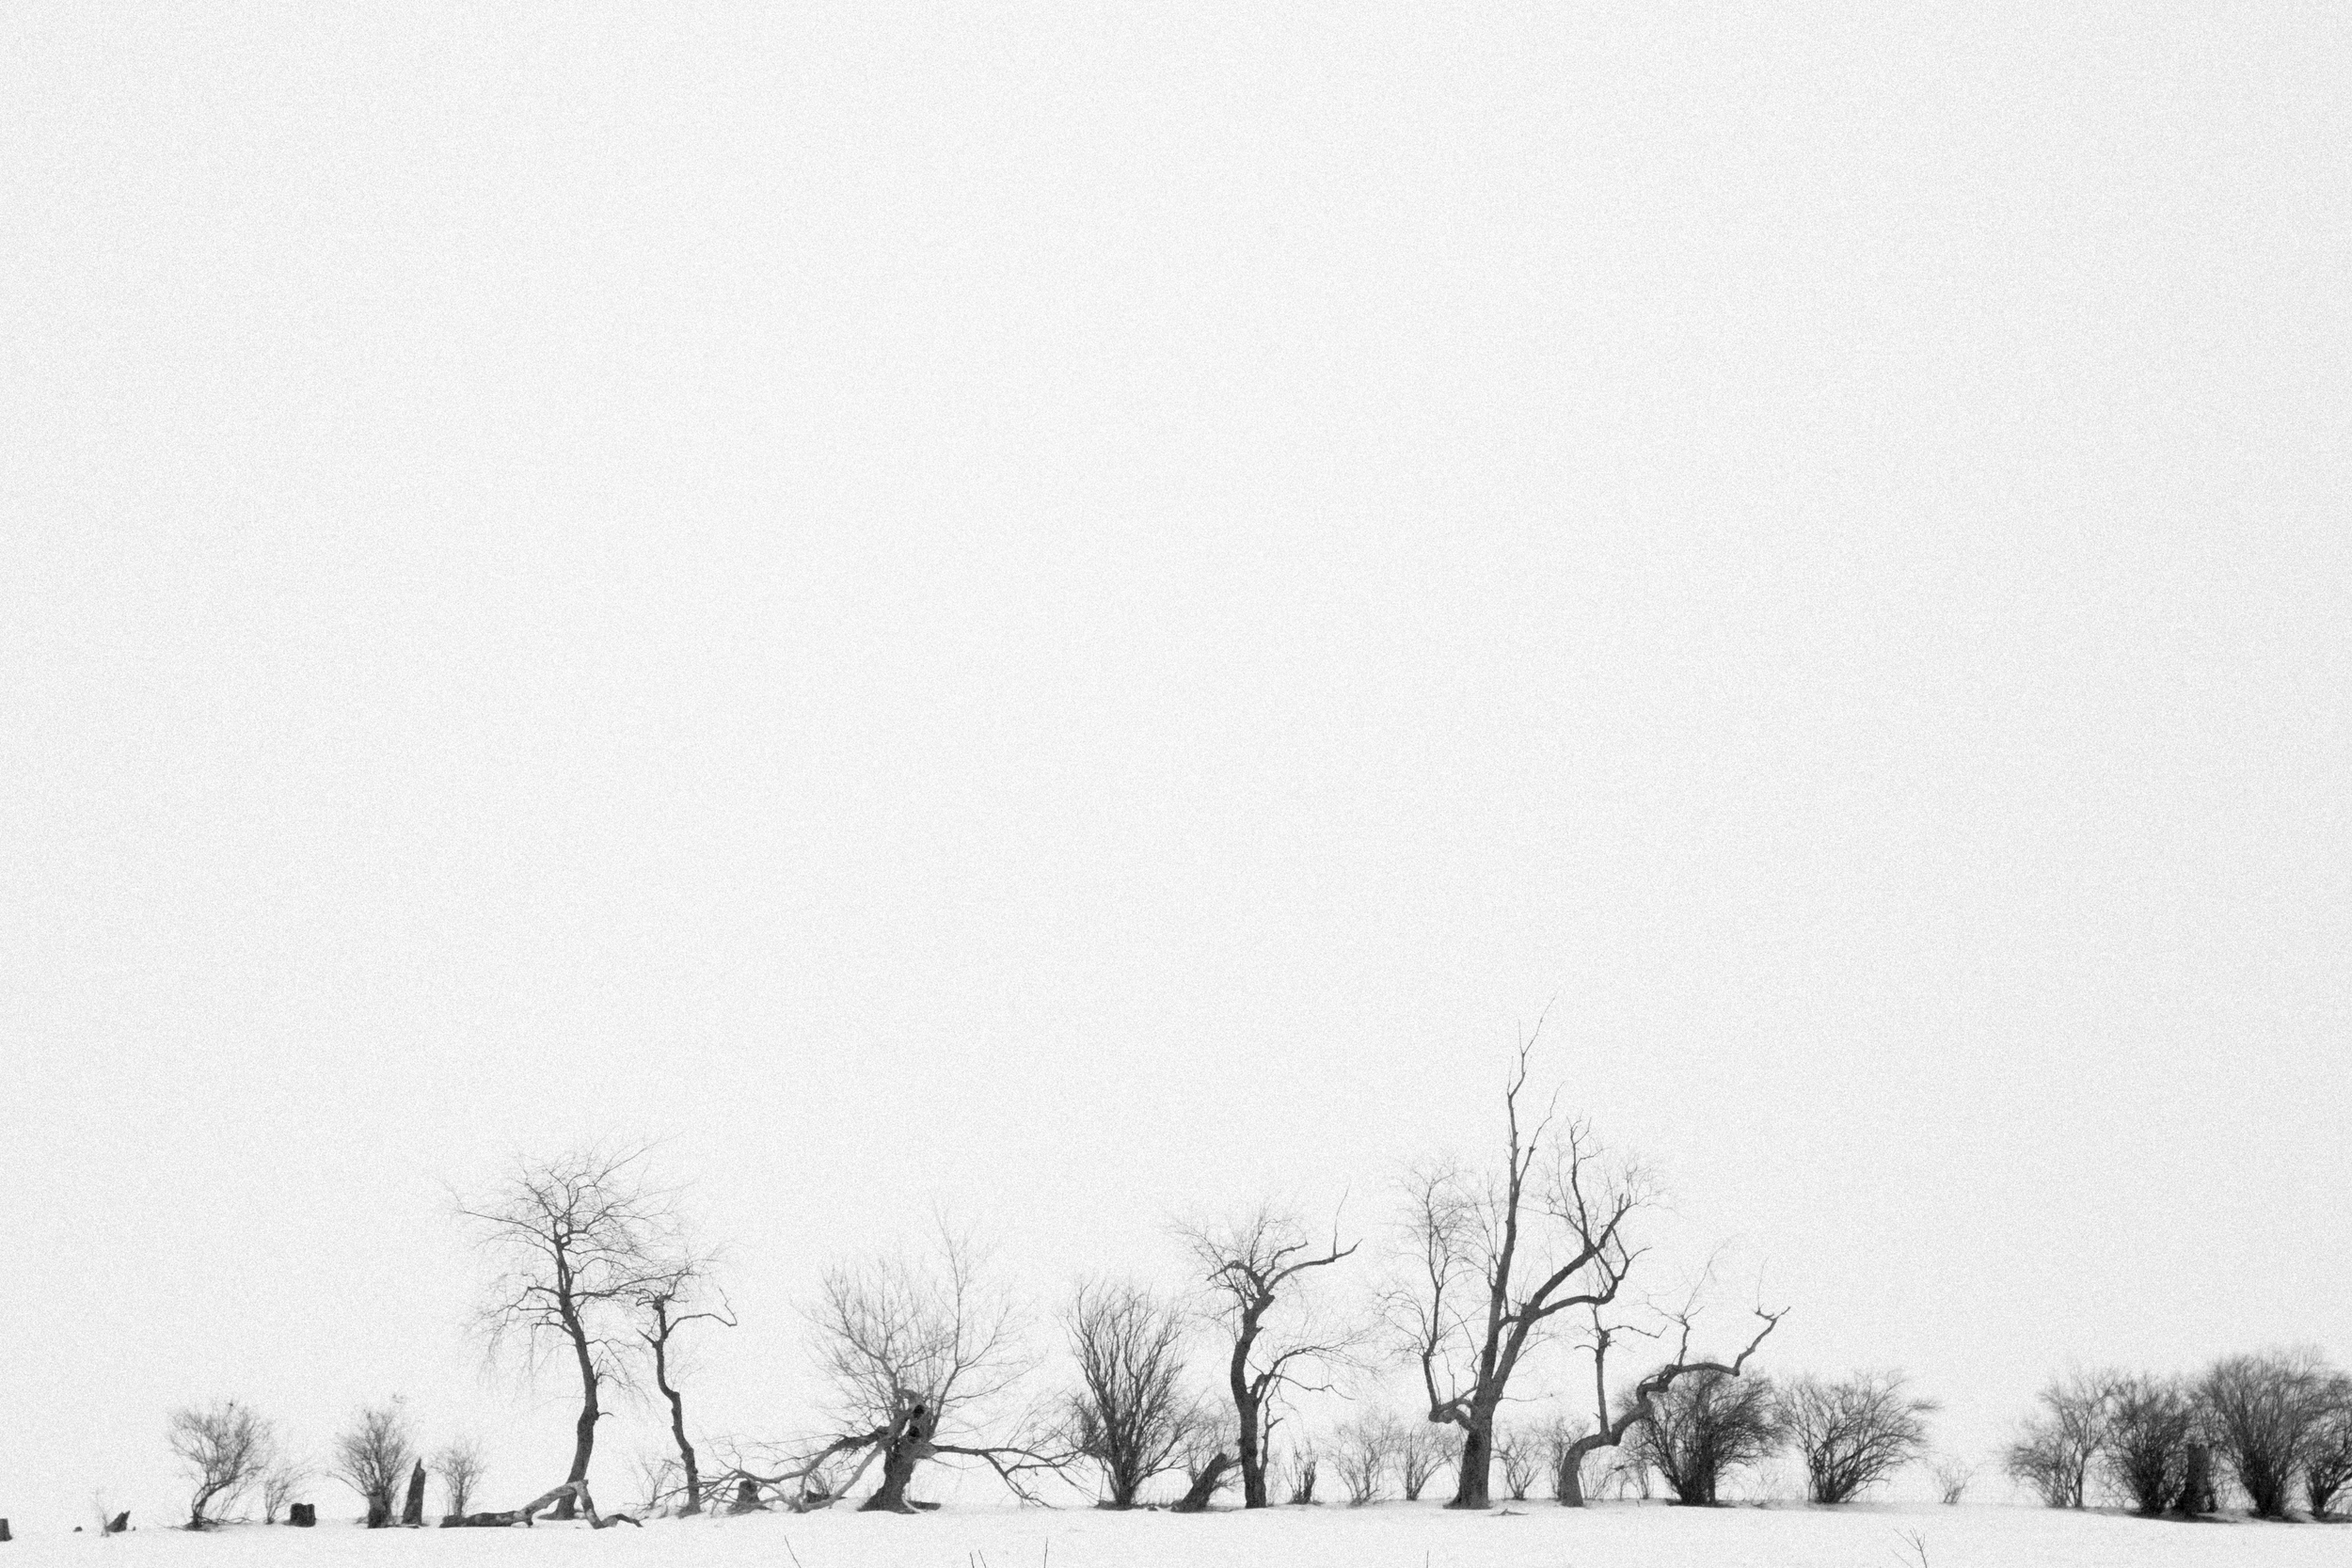 45 // 365 Dancing trees in the snow